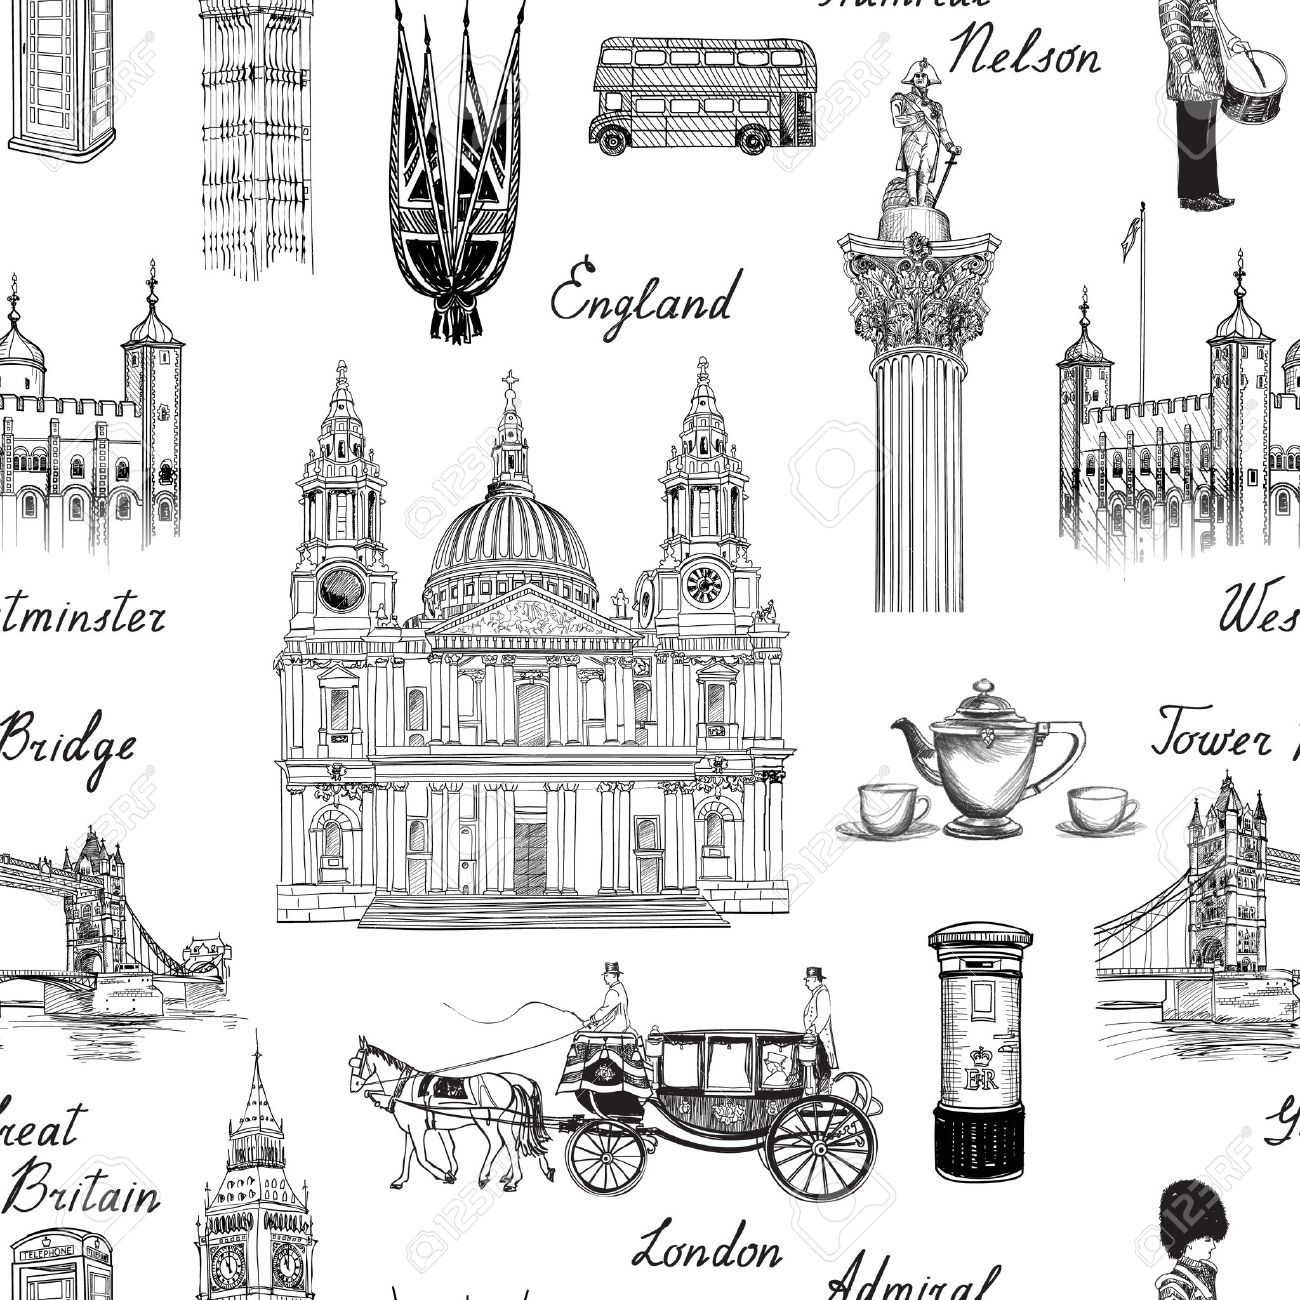 London landmark seamless pattern. Doodle travel Europe sketchy lettering. Famous architectural monuments and symbols. England vintage icons vector textured background - 51738232